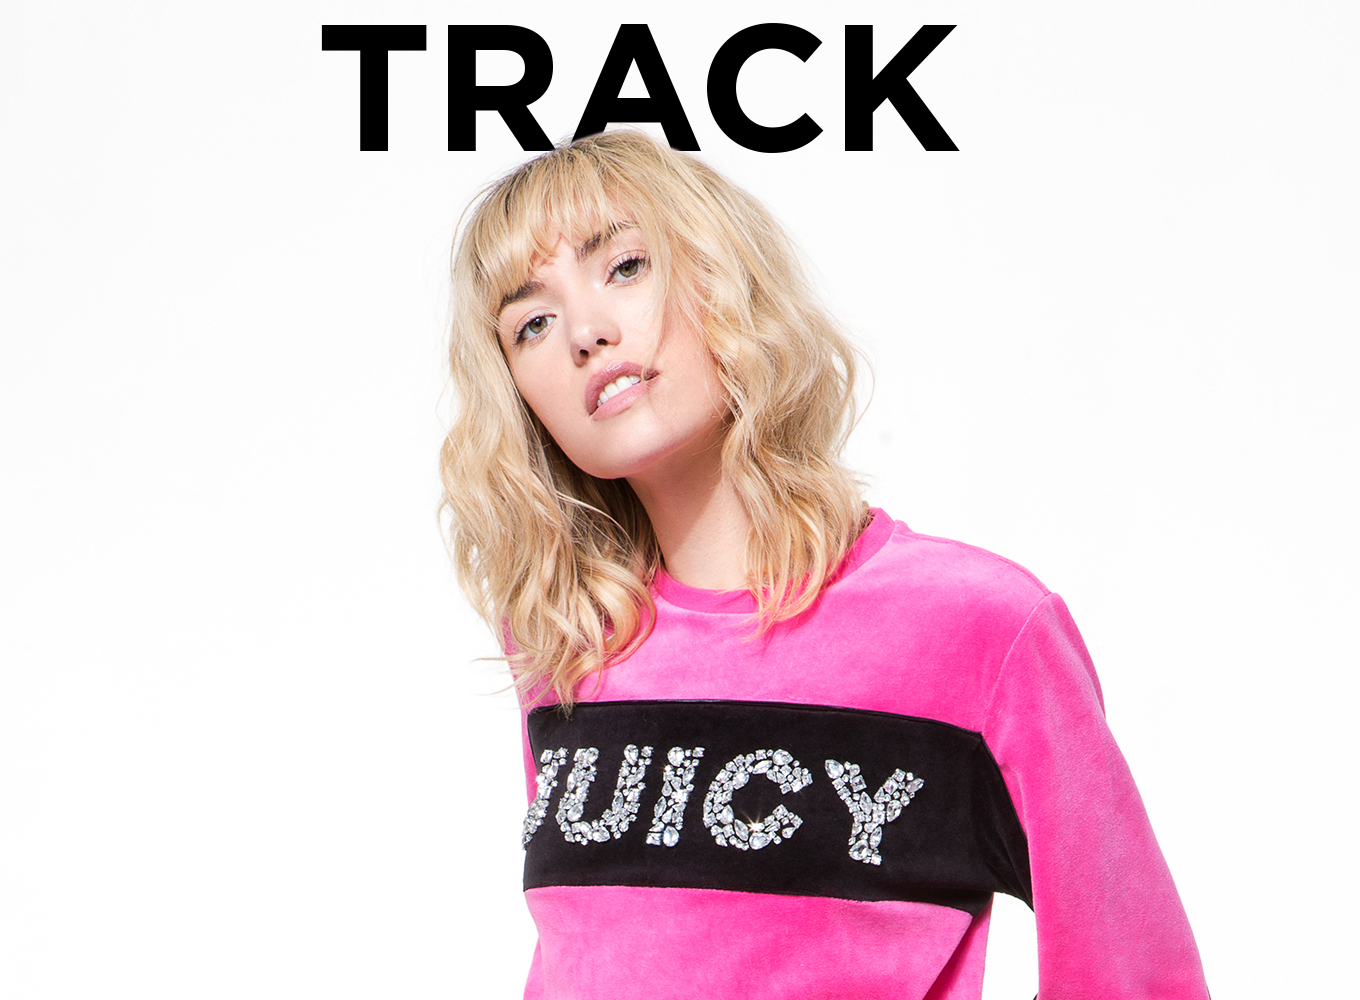 Save on ALL Track. Take 25% Off Your Order!